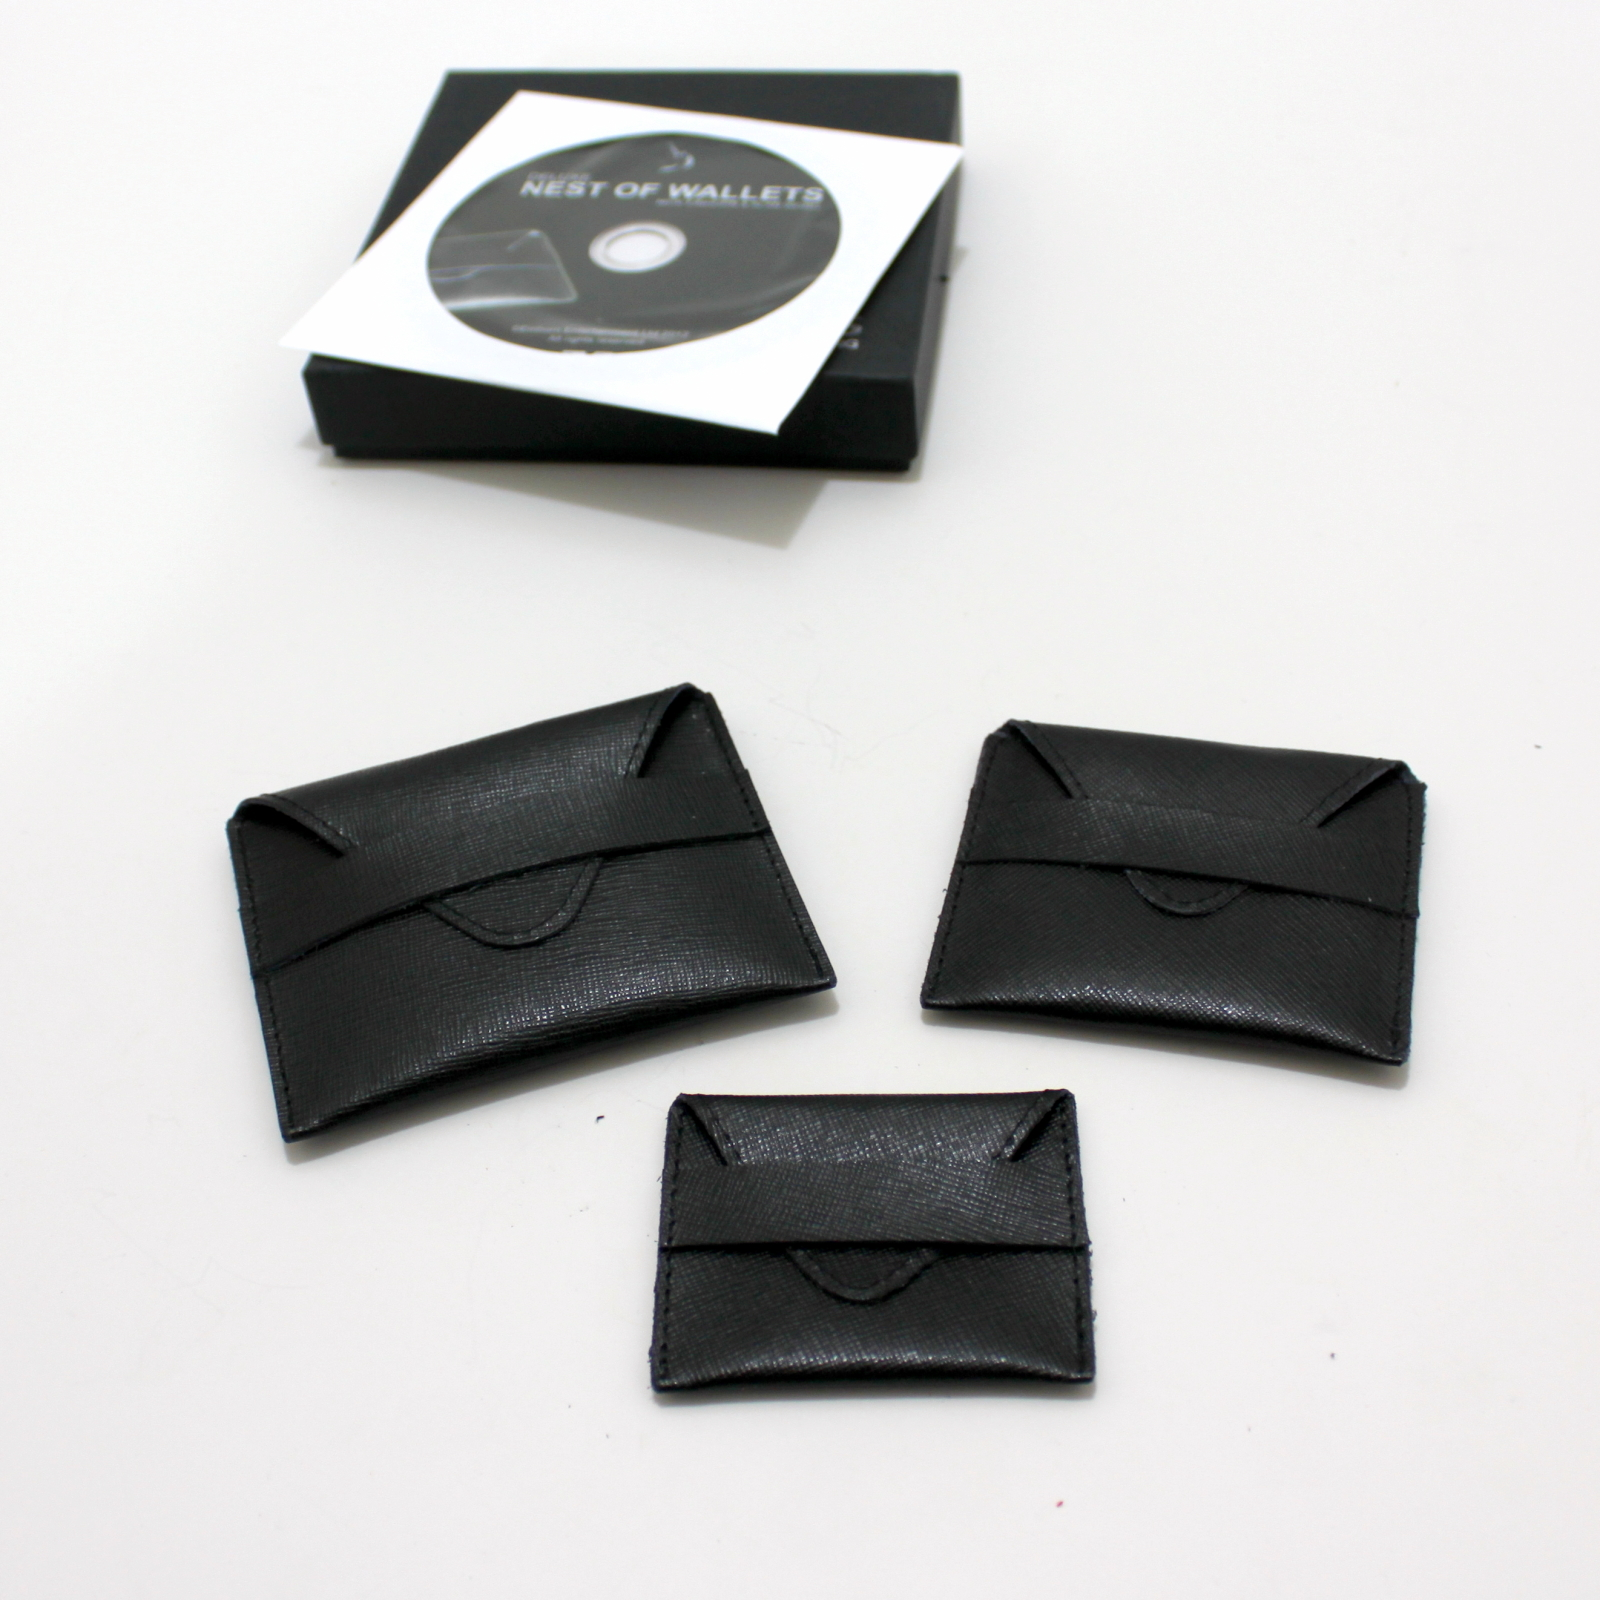 Deluxe Nest of Wallets by Nick Einhorn, Alan Wong